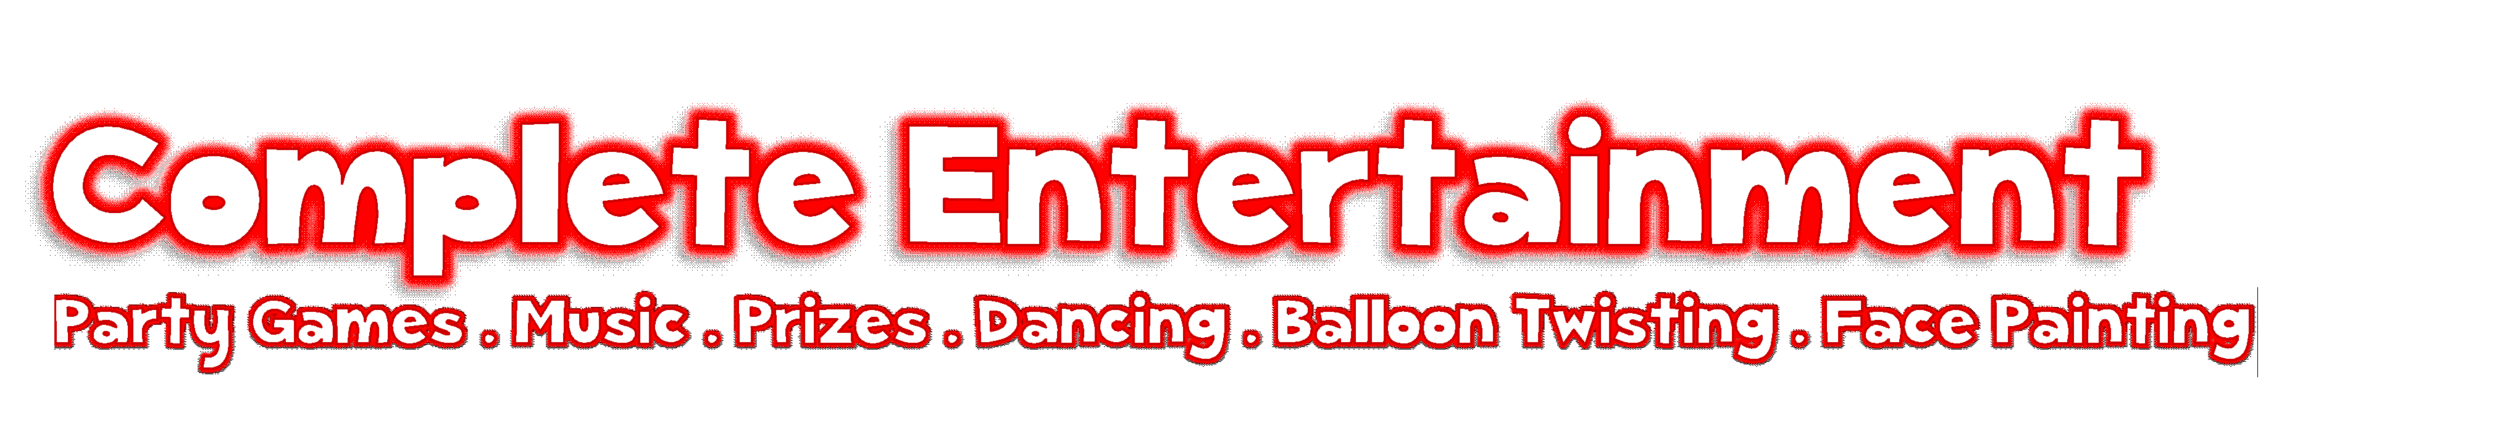 Kids Party Entertainer - Complete Entertainment Pacakage